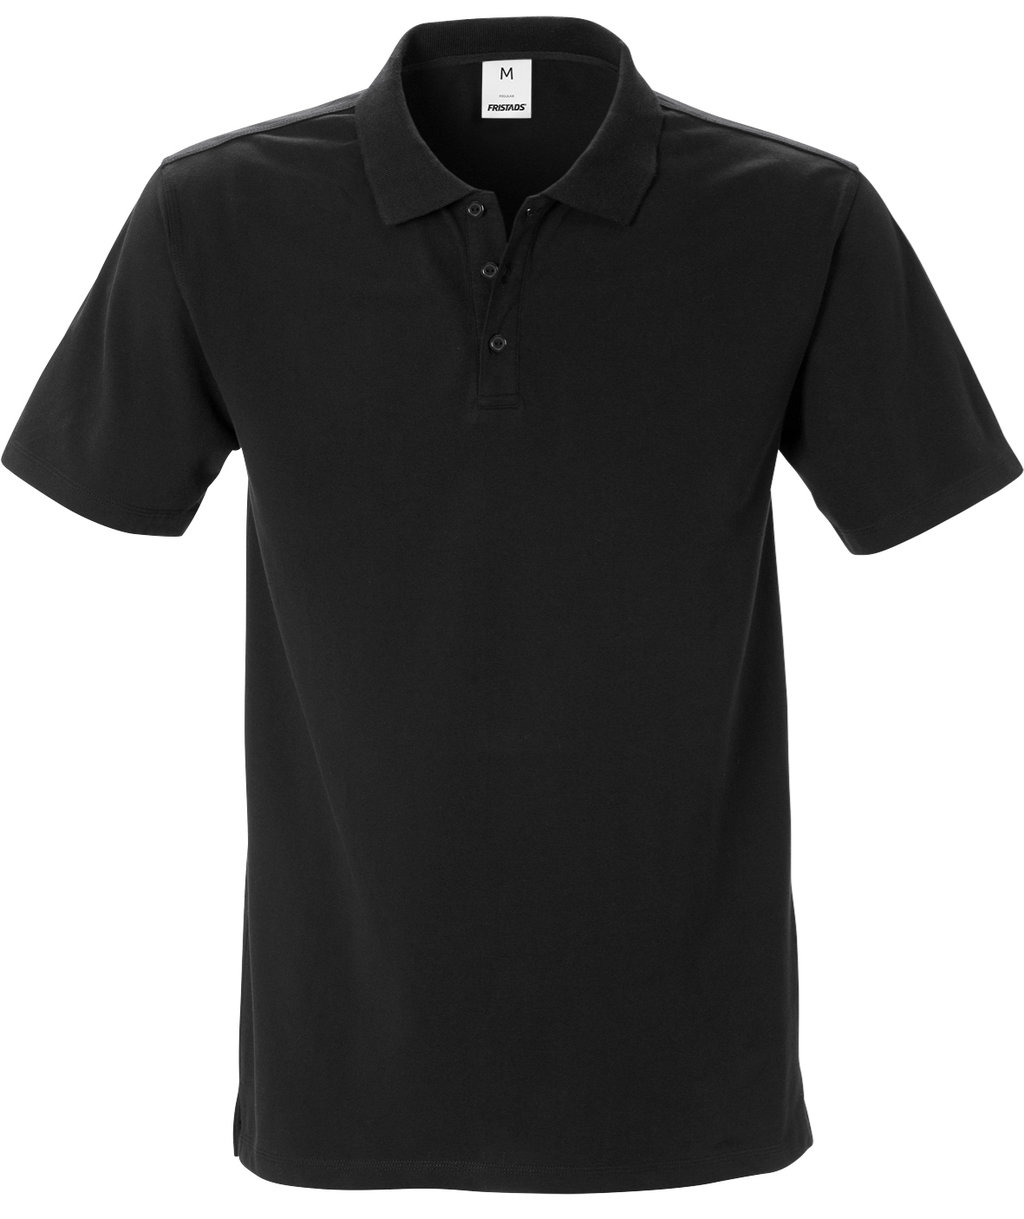 Fristads Acode polo T-shirt, Sort